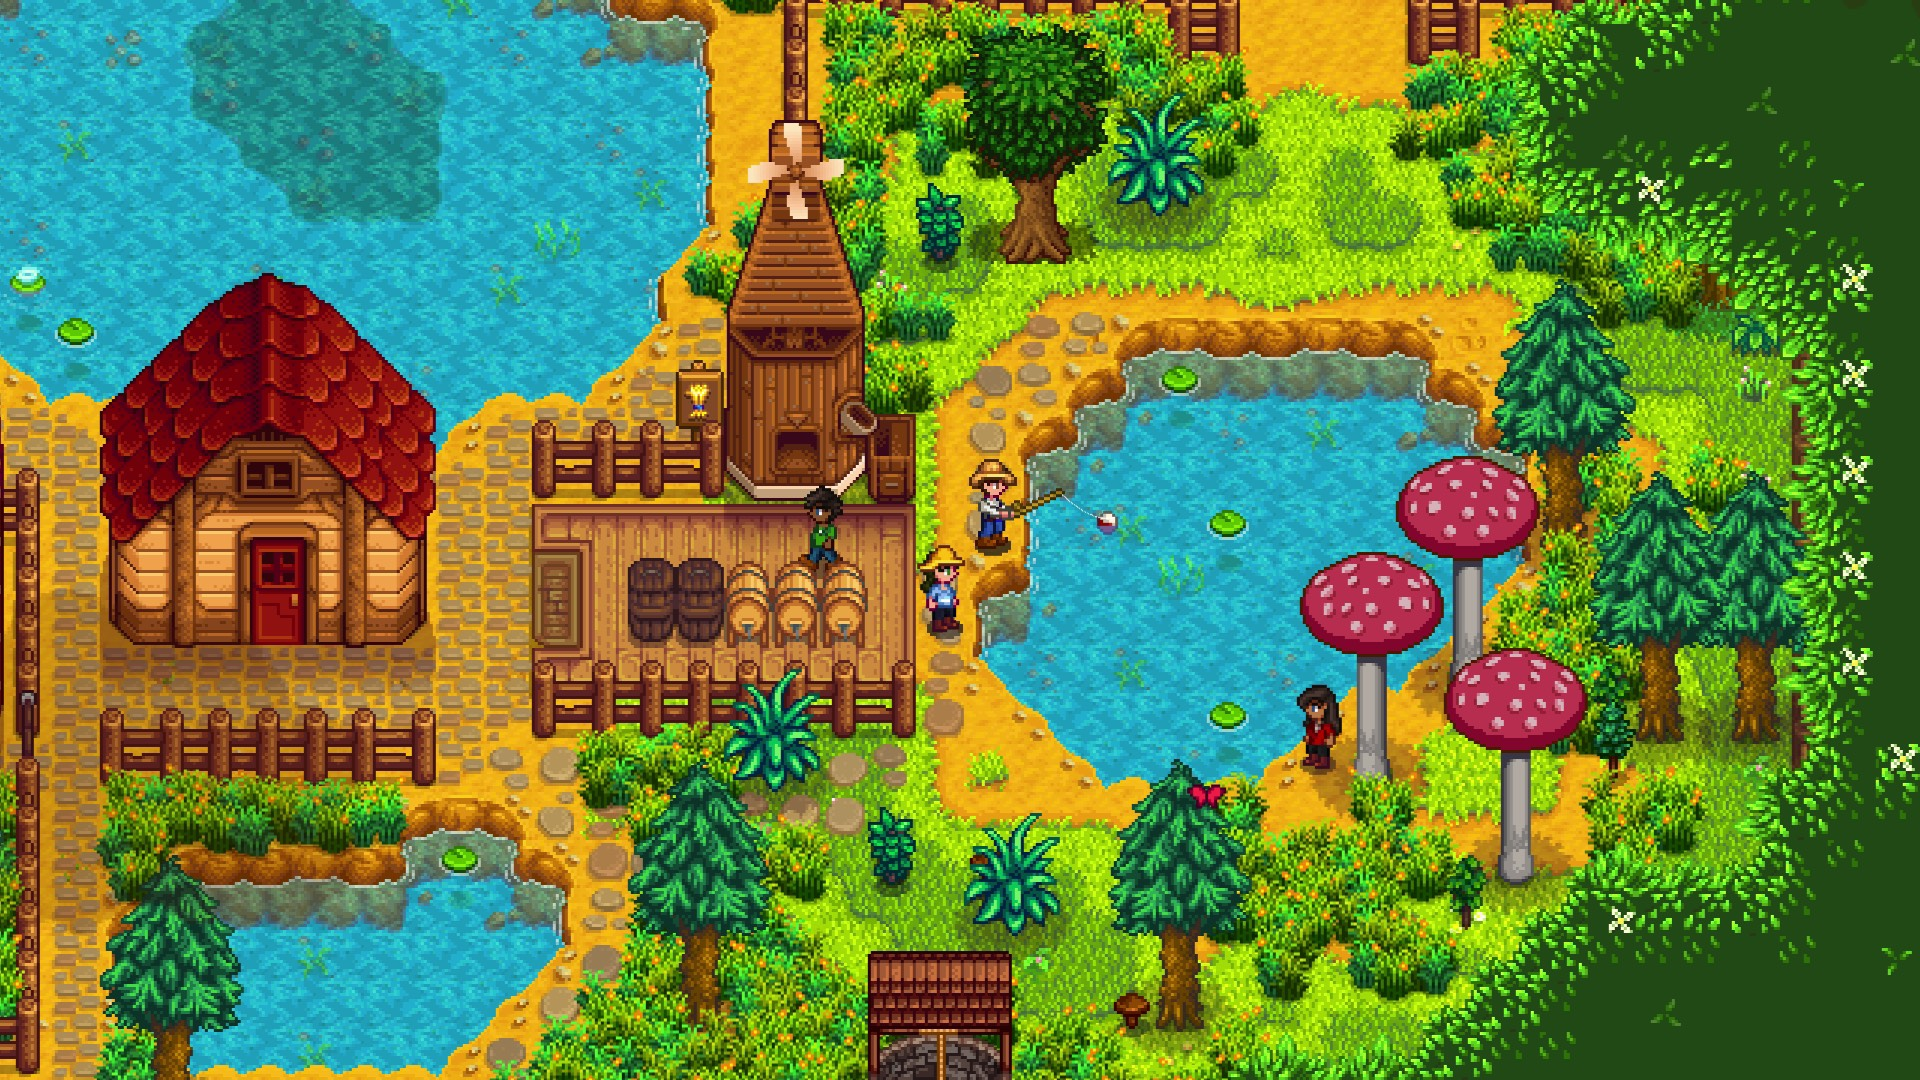 Stardew Valley screenshot of four player characters on a farm with a shed and mill, surrounded by trees and tall mushrooms.